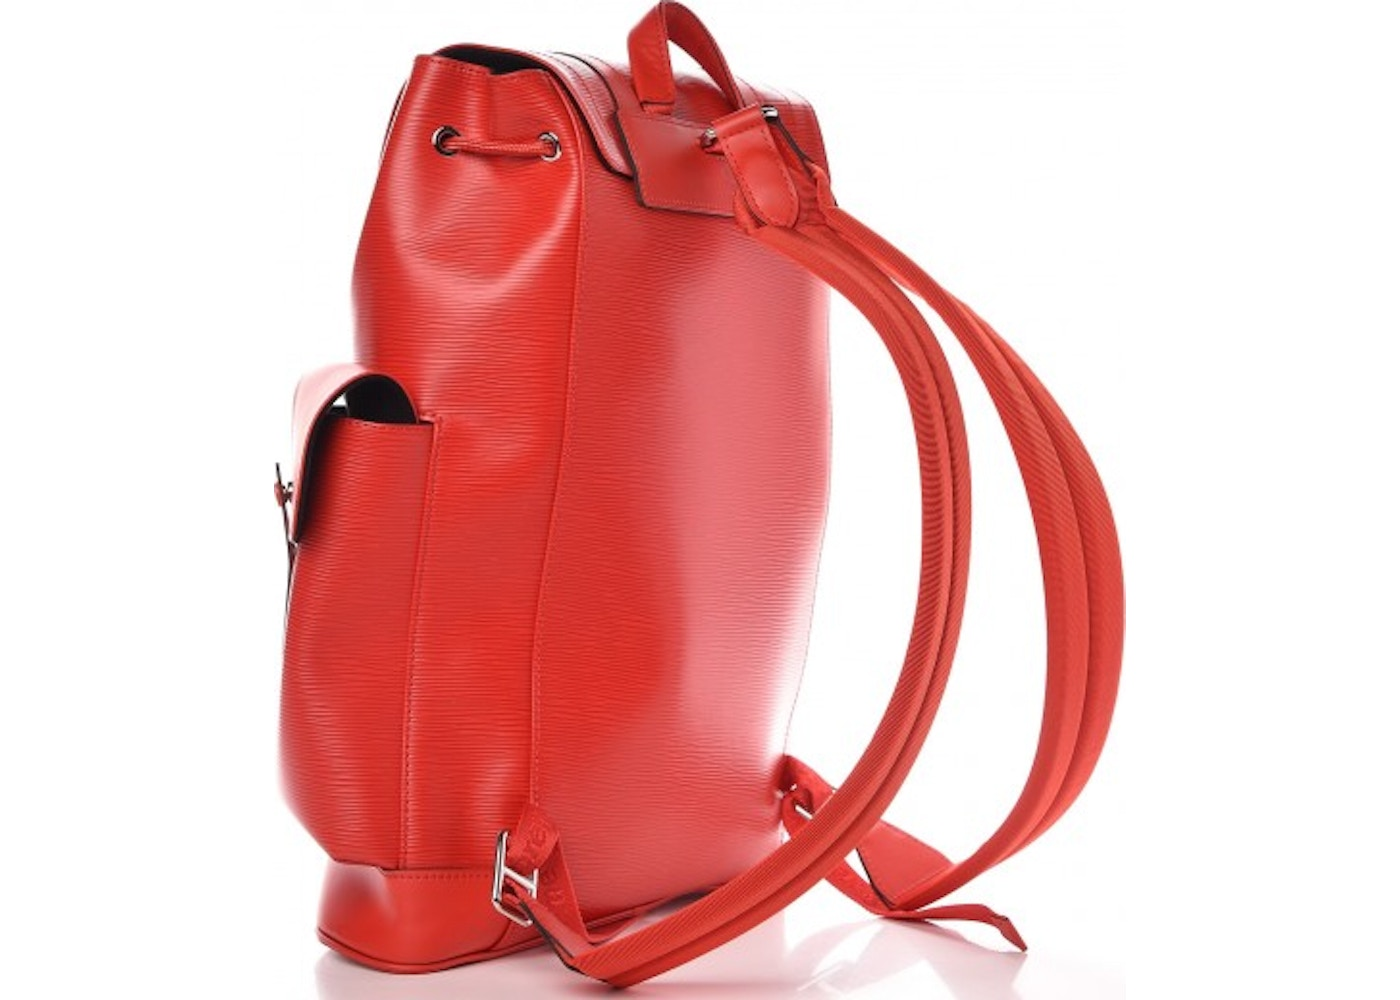 1a8c92449a409 Louis Vuitton x Supreme Christopher Backpack Epi PM Red